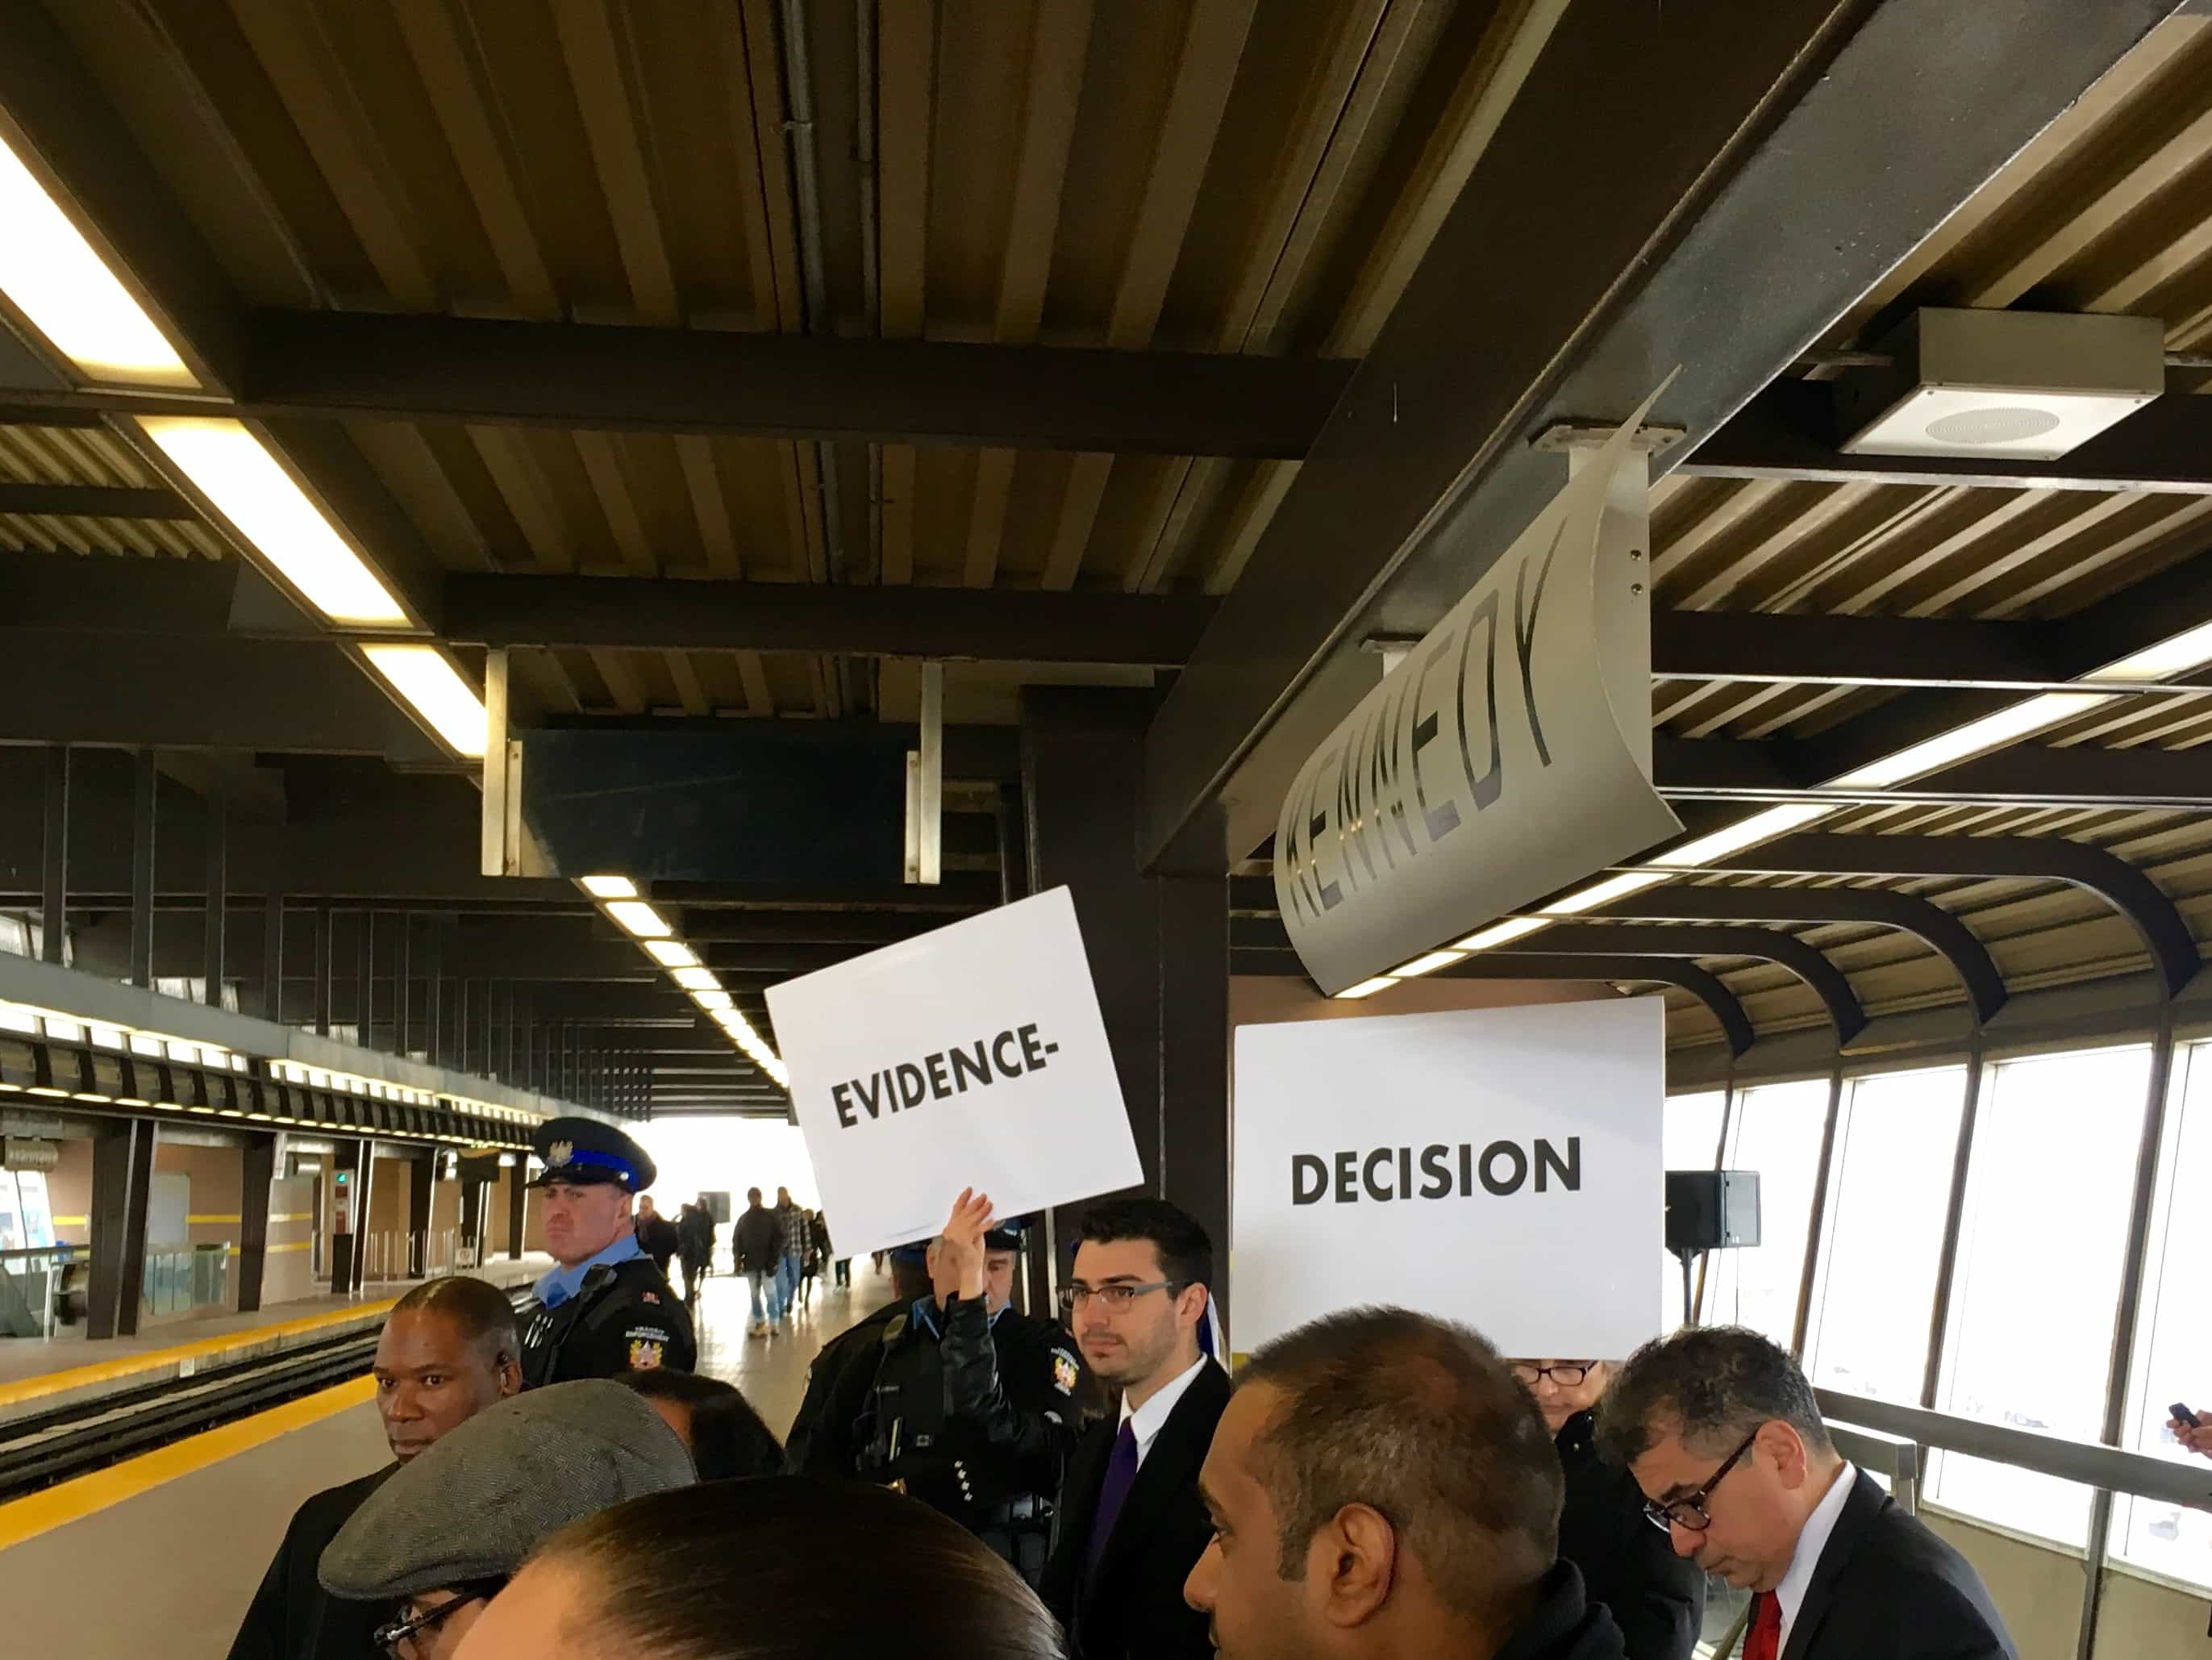 """10:18 a.m. Feb. 28, 2017. Two representatives from the group TTC Riders hold large signs up at Kennedy station Tuesday morning. Mayor John Tory met reporters to speak about the latest report to be considered before Executive Committee next week. """"This Scarborough shuffle here at Kennedy station has to come to an end,"""" Tory said. """"It is scandalous that people playing politics against the will of every democratic chess that we've had, has slowed the city down from getting Scarborough the transit that it needs in order to spur jobs and economic development."""""""